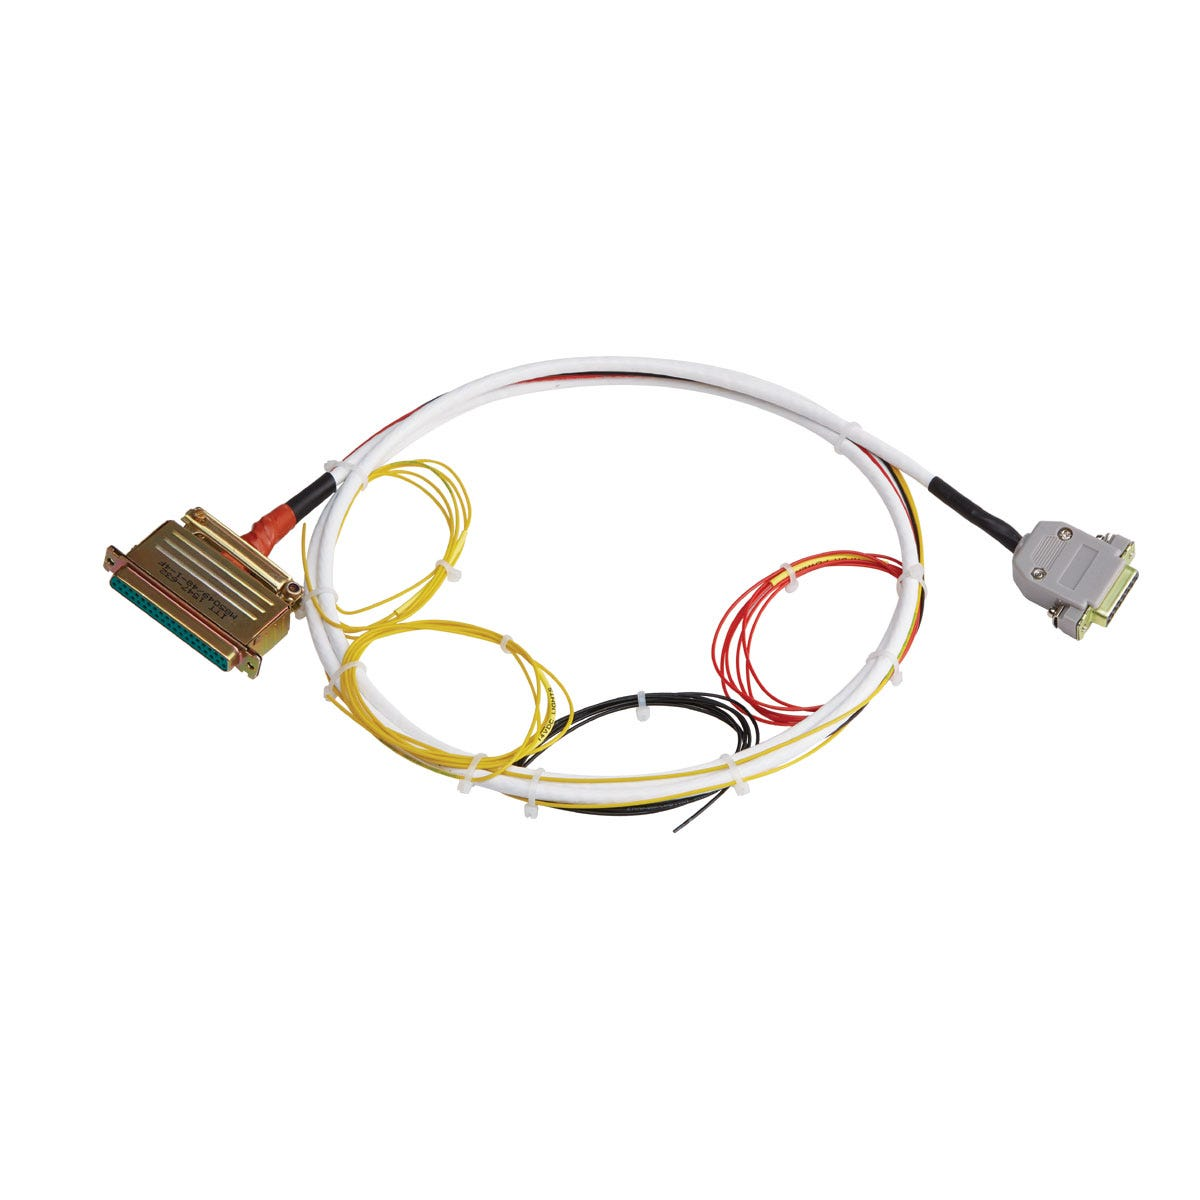 Stratus Esg Wiring Harness From Sportys Pilot Shop Kt76a Diagram